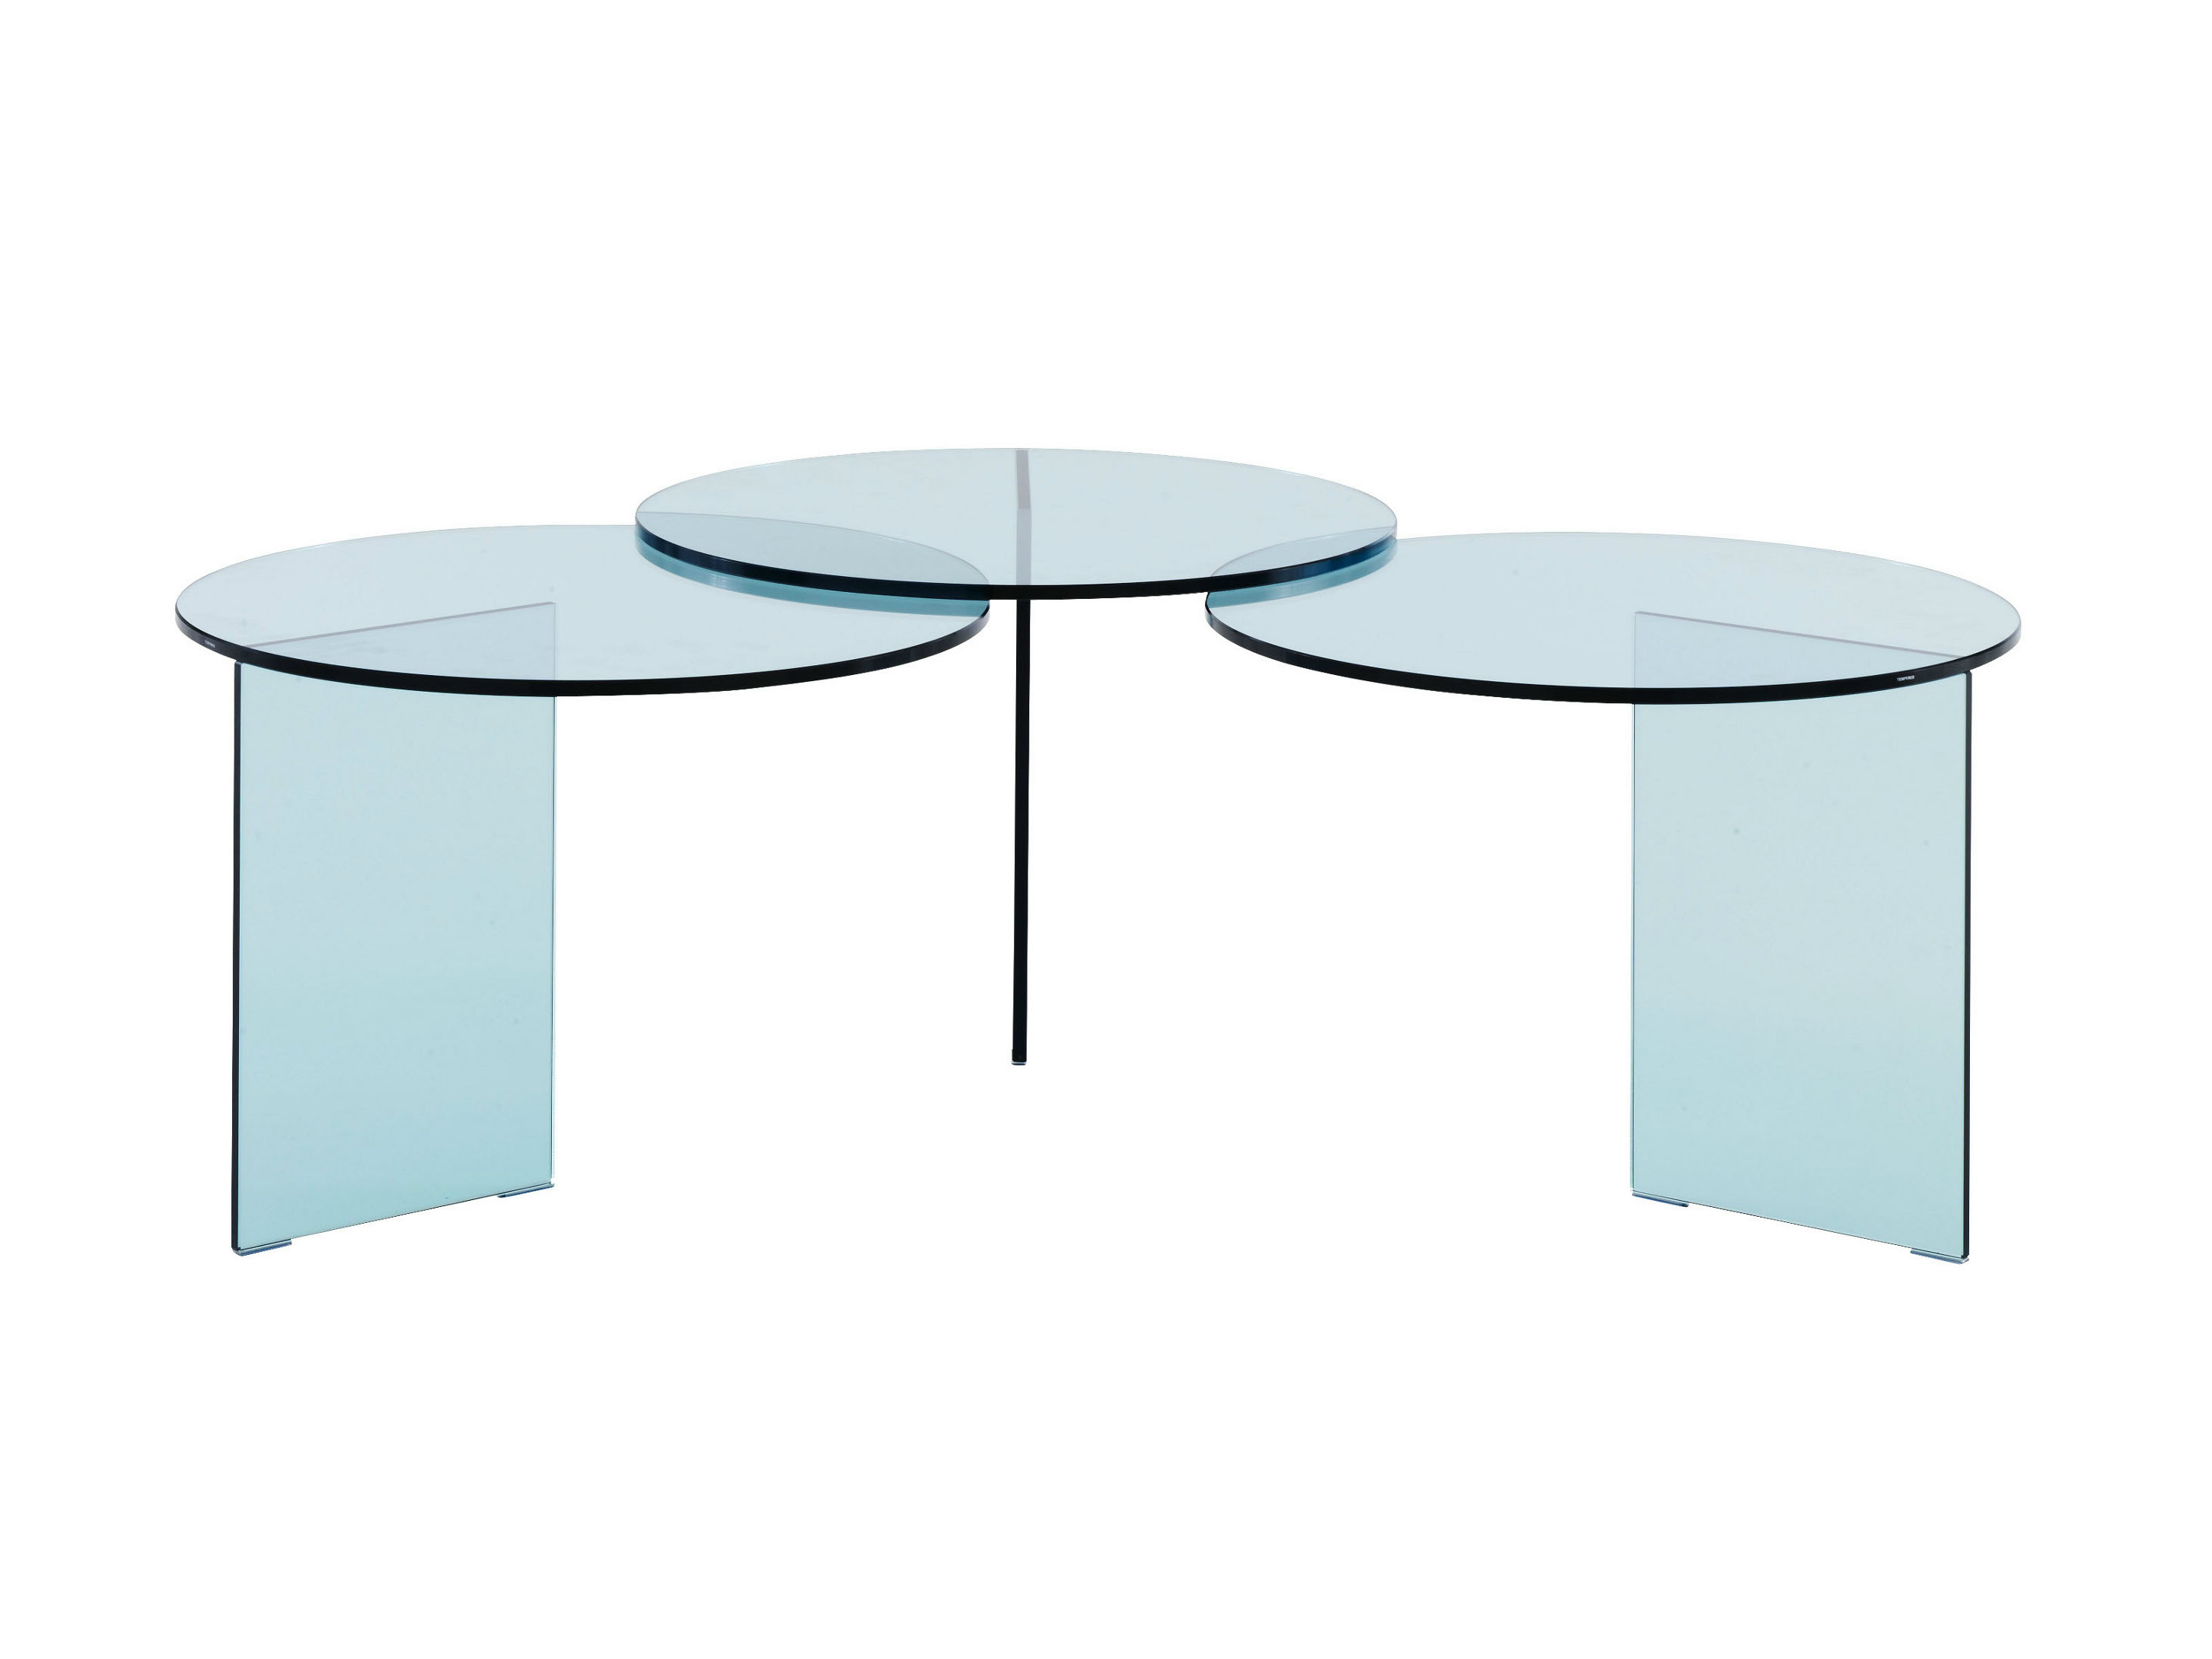 Table basse ronde en verre tremp aoyama by roset italia - Table basse design en verre trempe ...